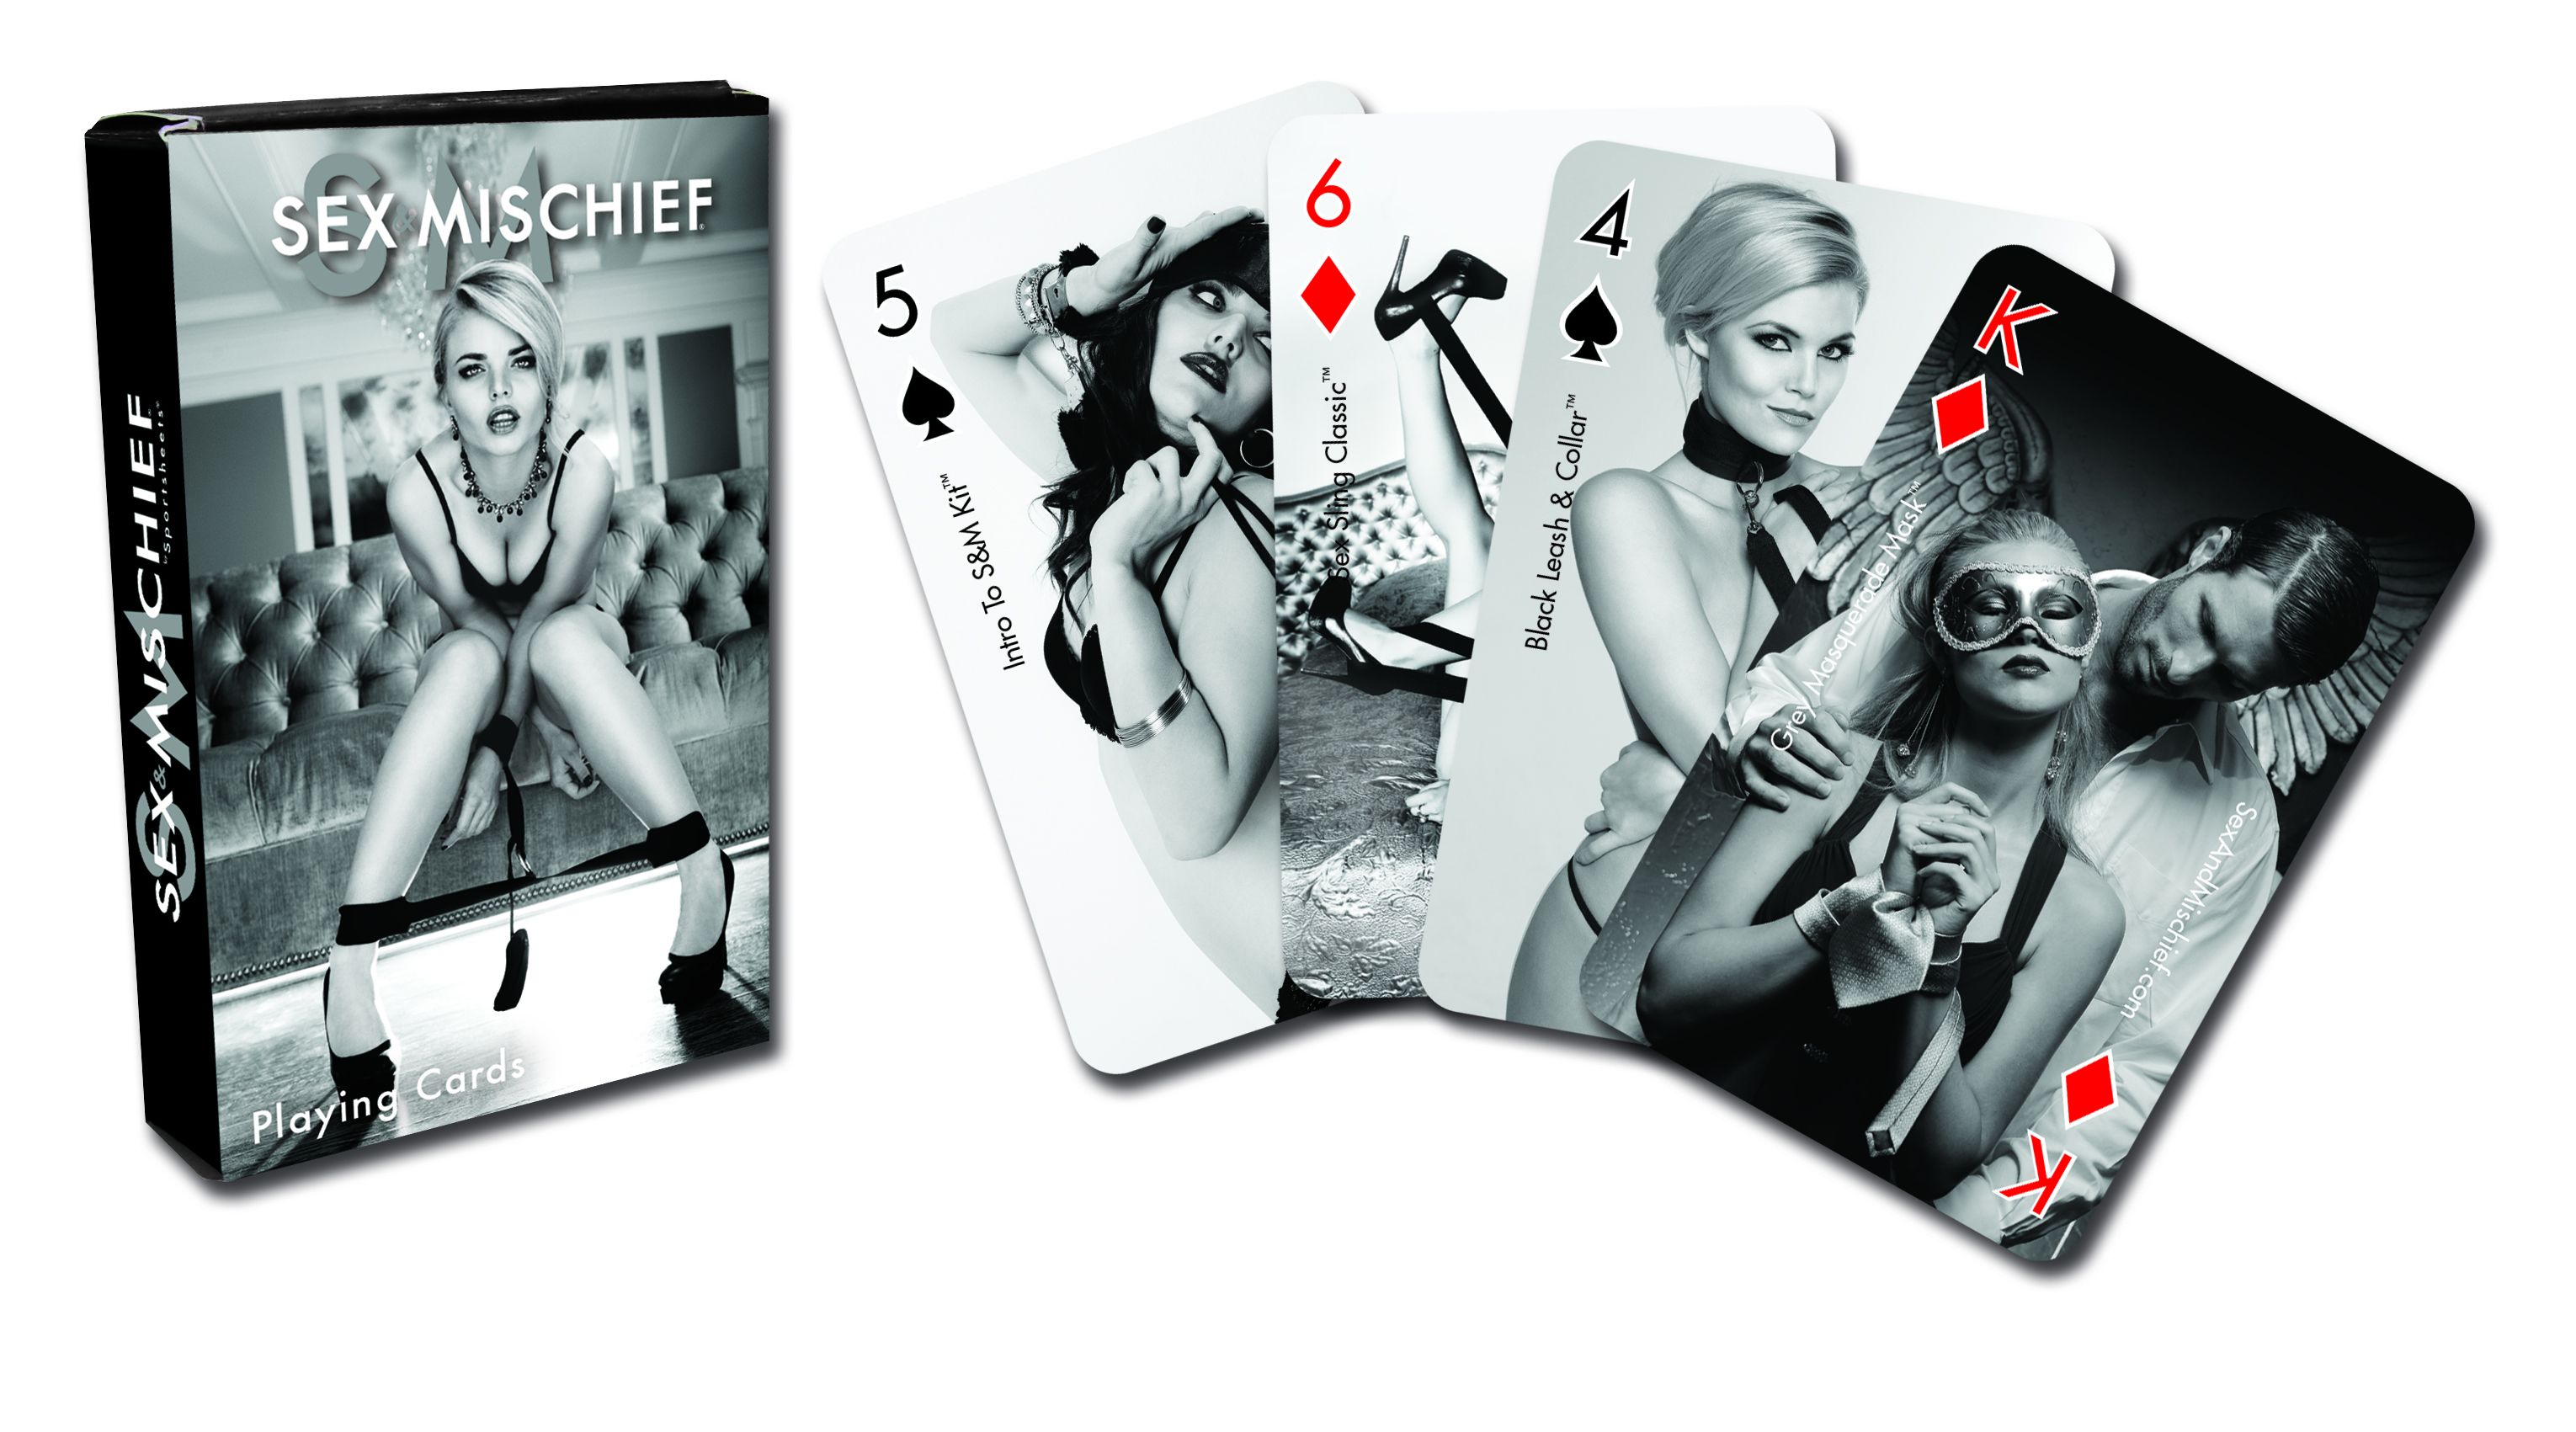 Free erotic e-mail cards